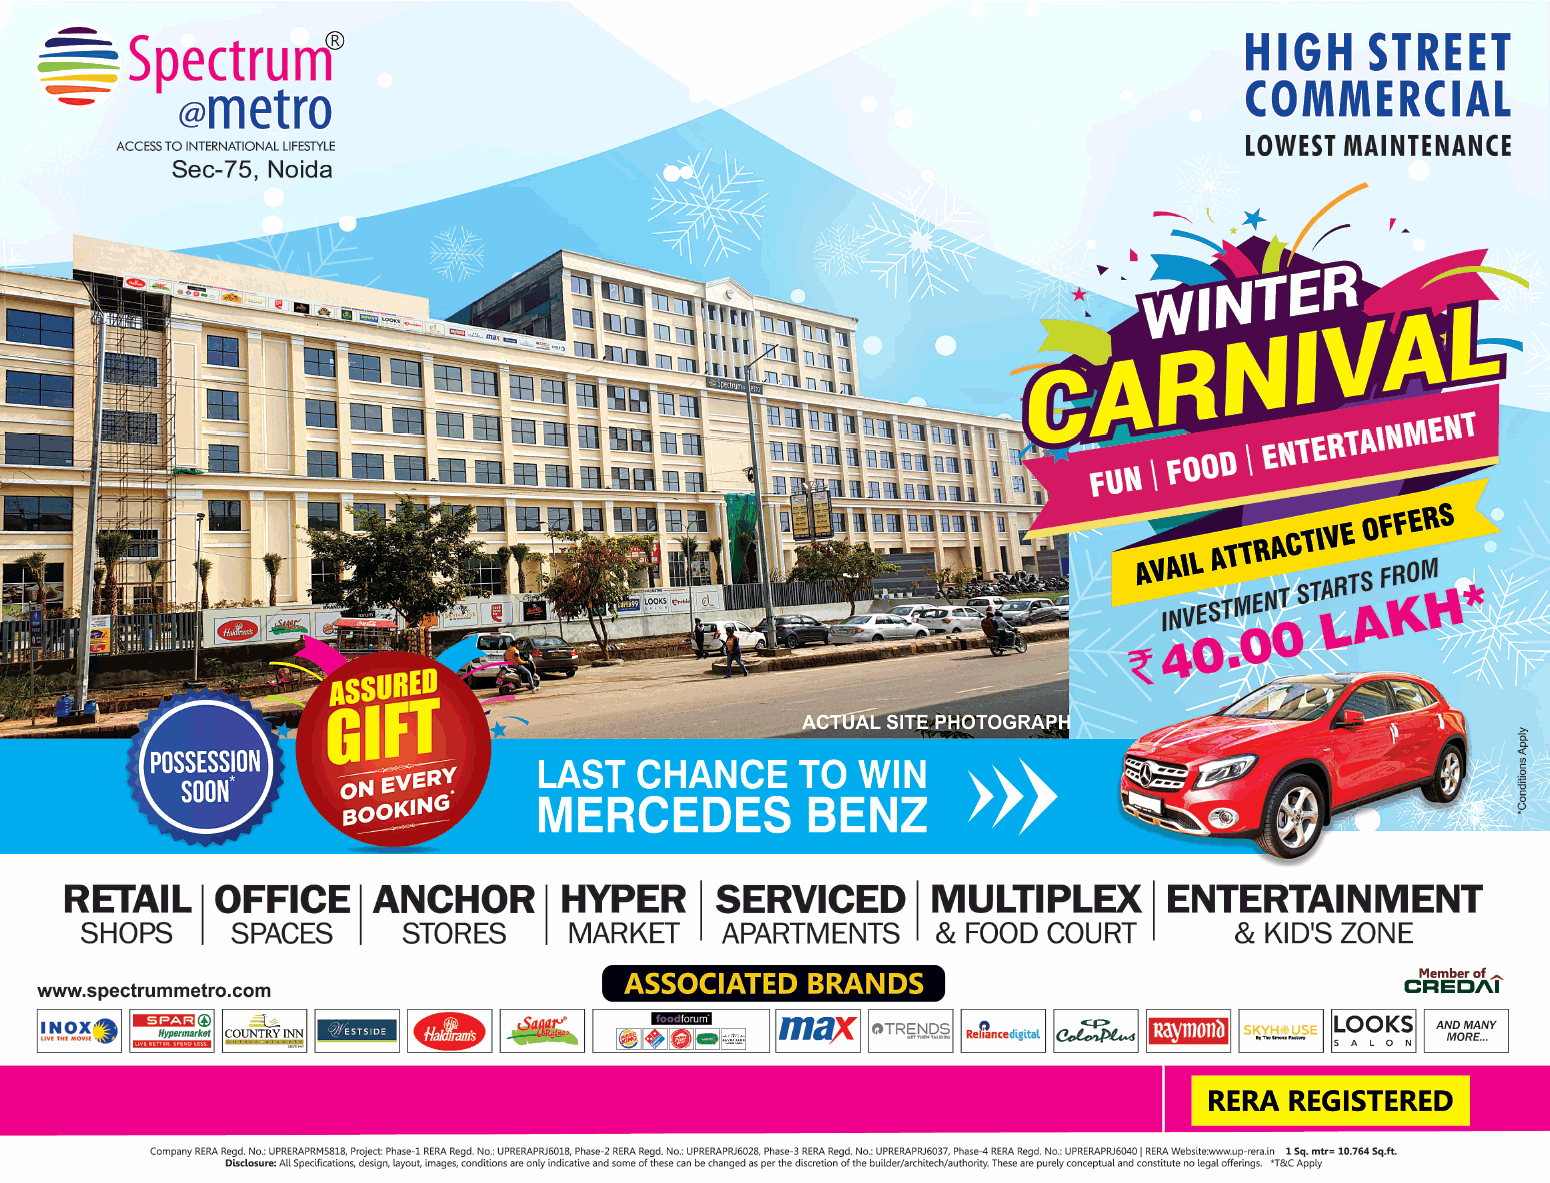 Last chance to win Mercedes Benz at Blue Spectrum Metro in Noida